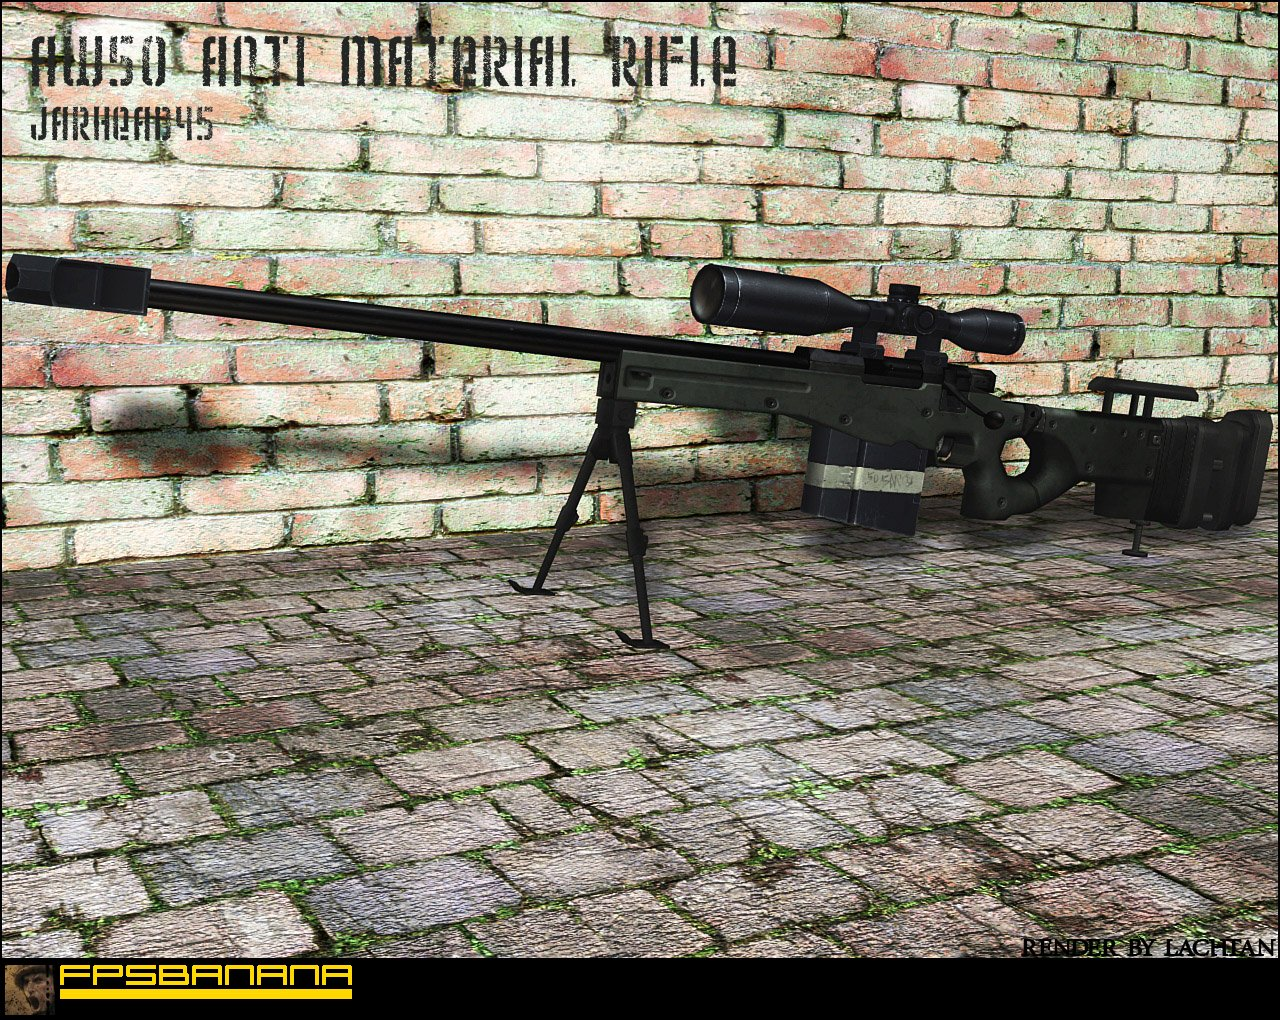 AW50 Anti Material Rifle